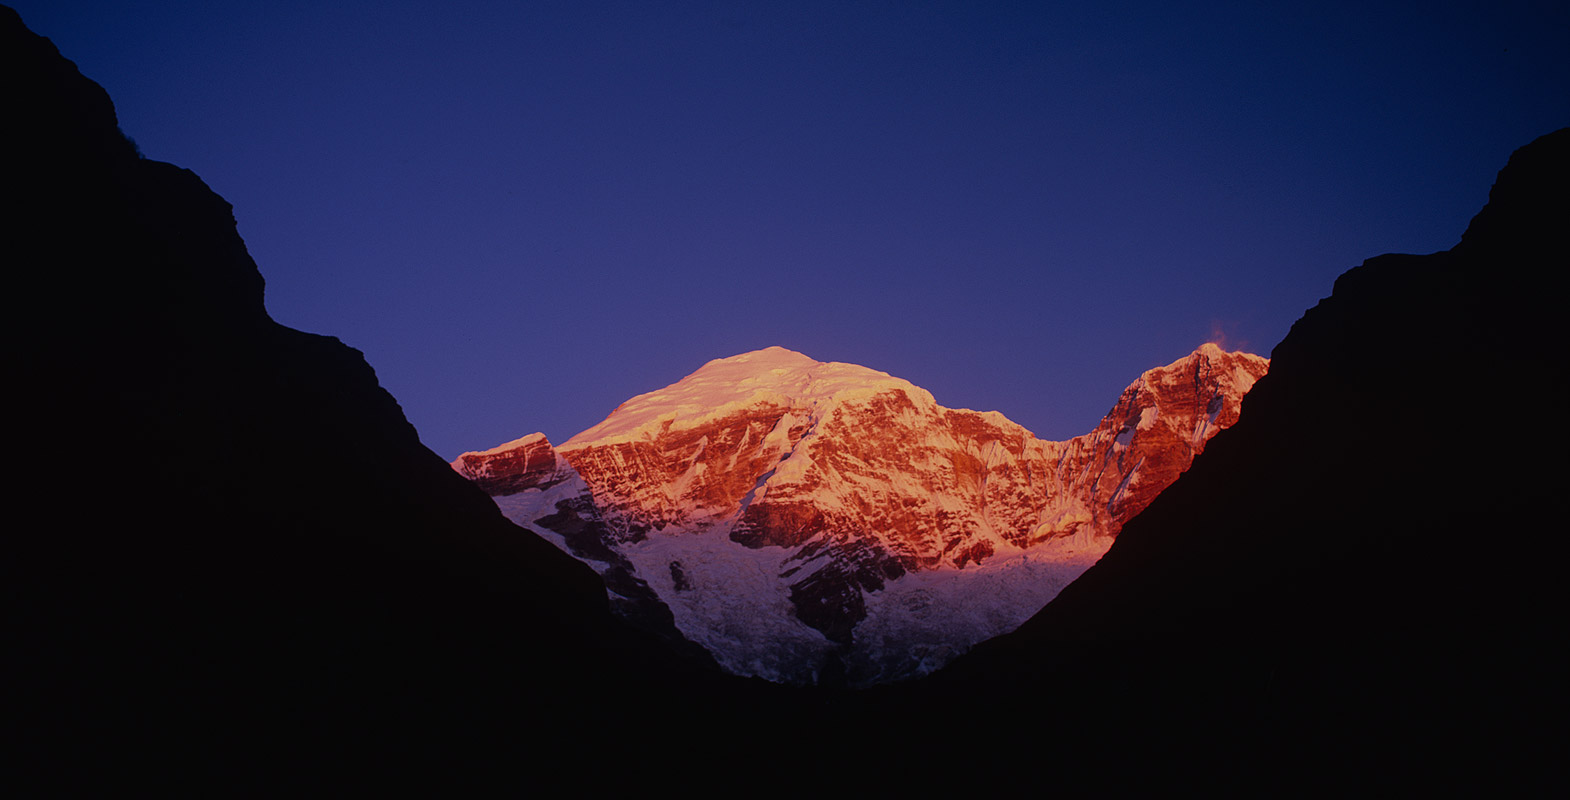 At sunrise, from Jangothang Camp, BhutanBronica ETRSi, 75mm, Fuji Velvia